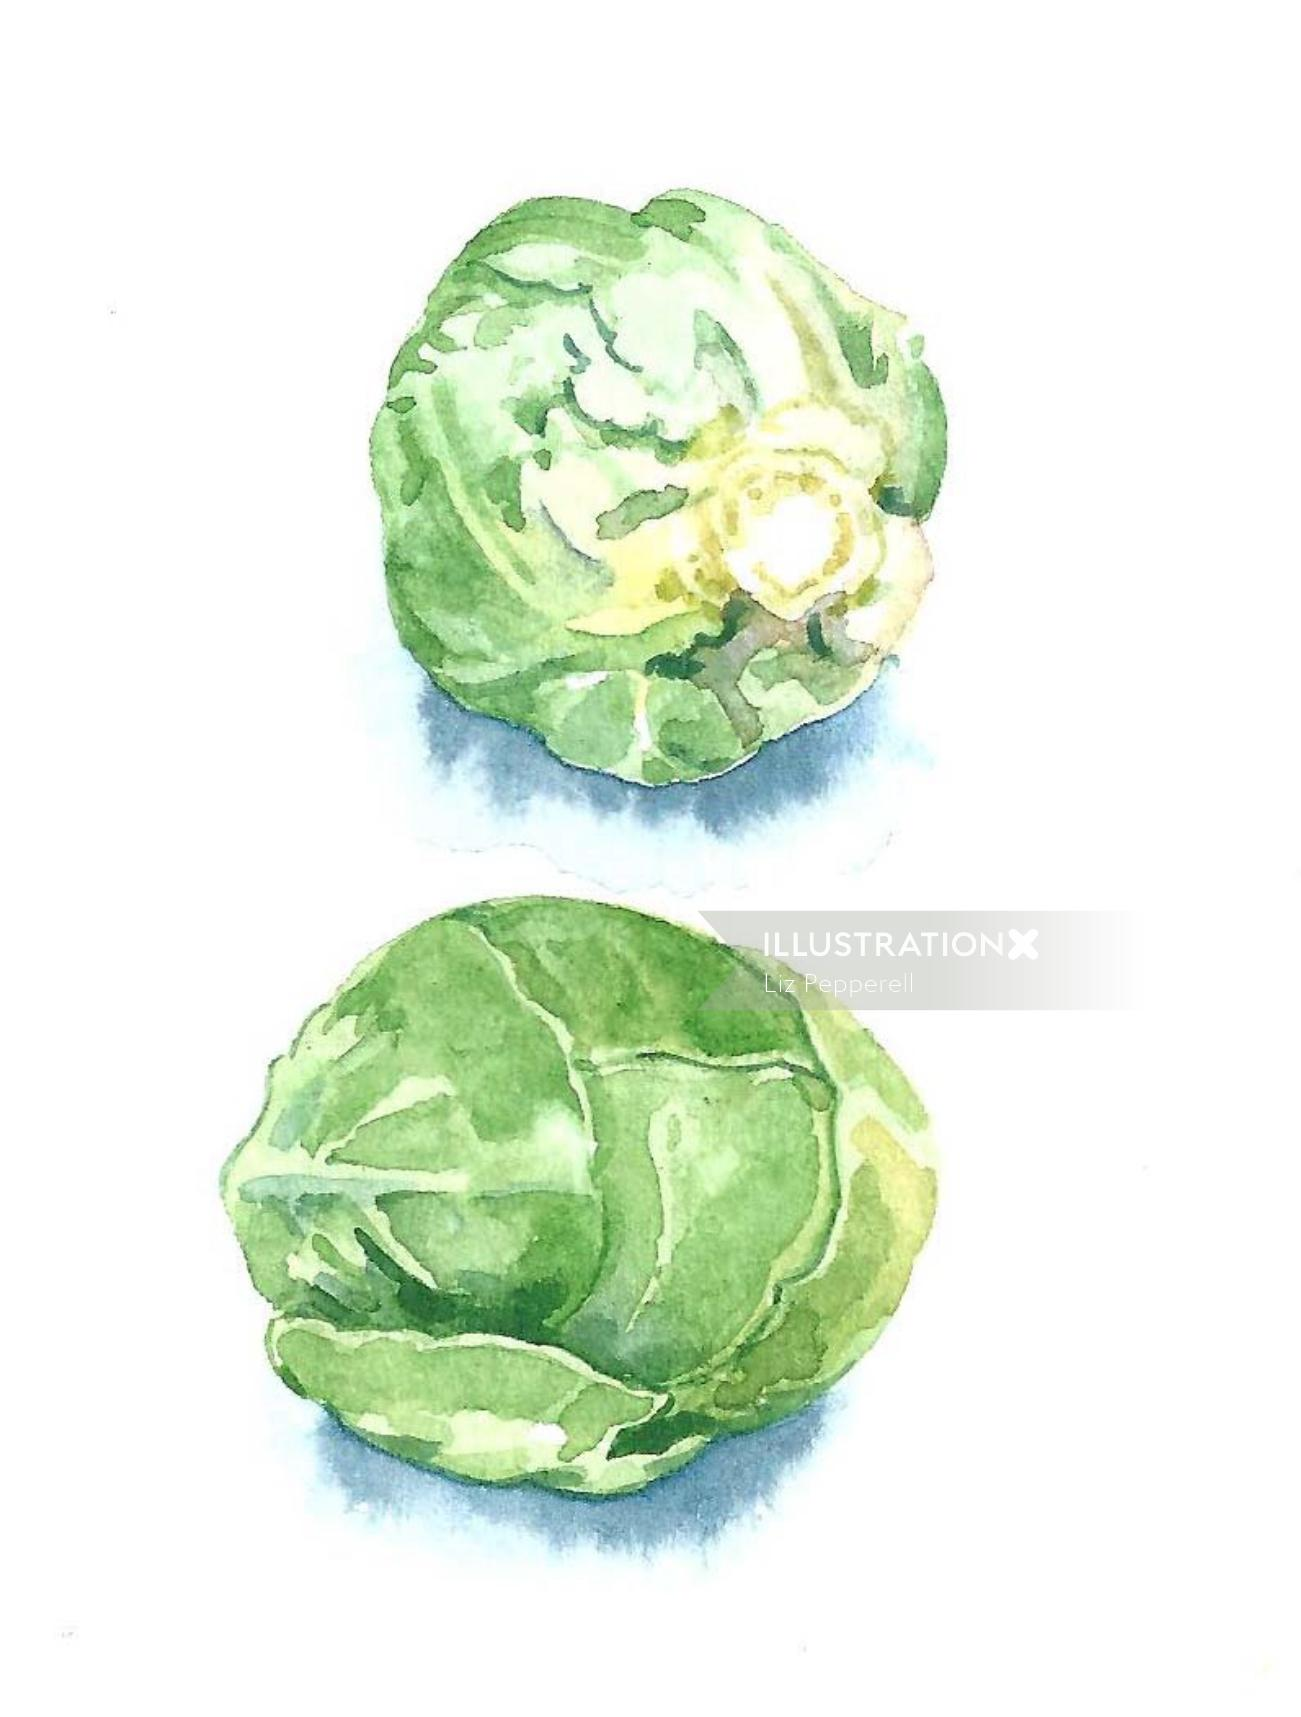 Watercolor art of Vegetables- Sprouts